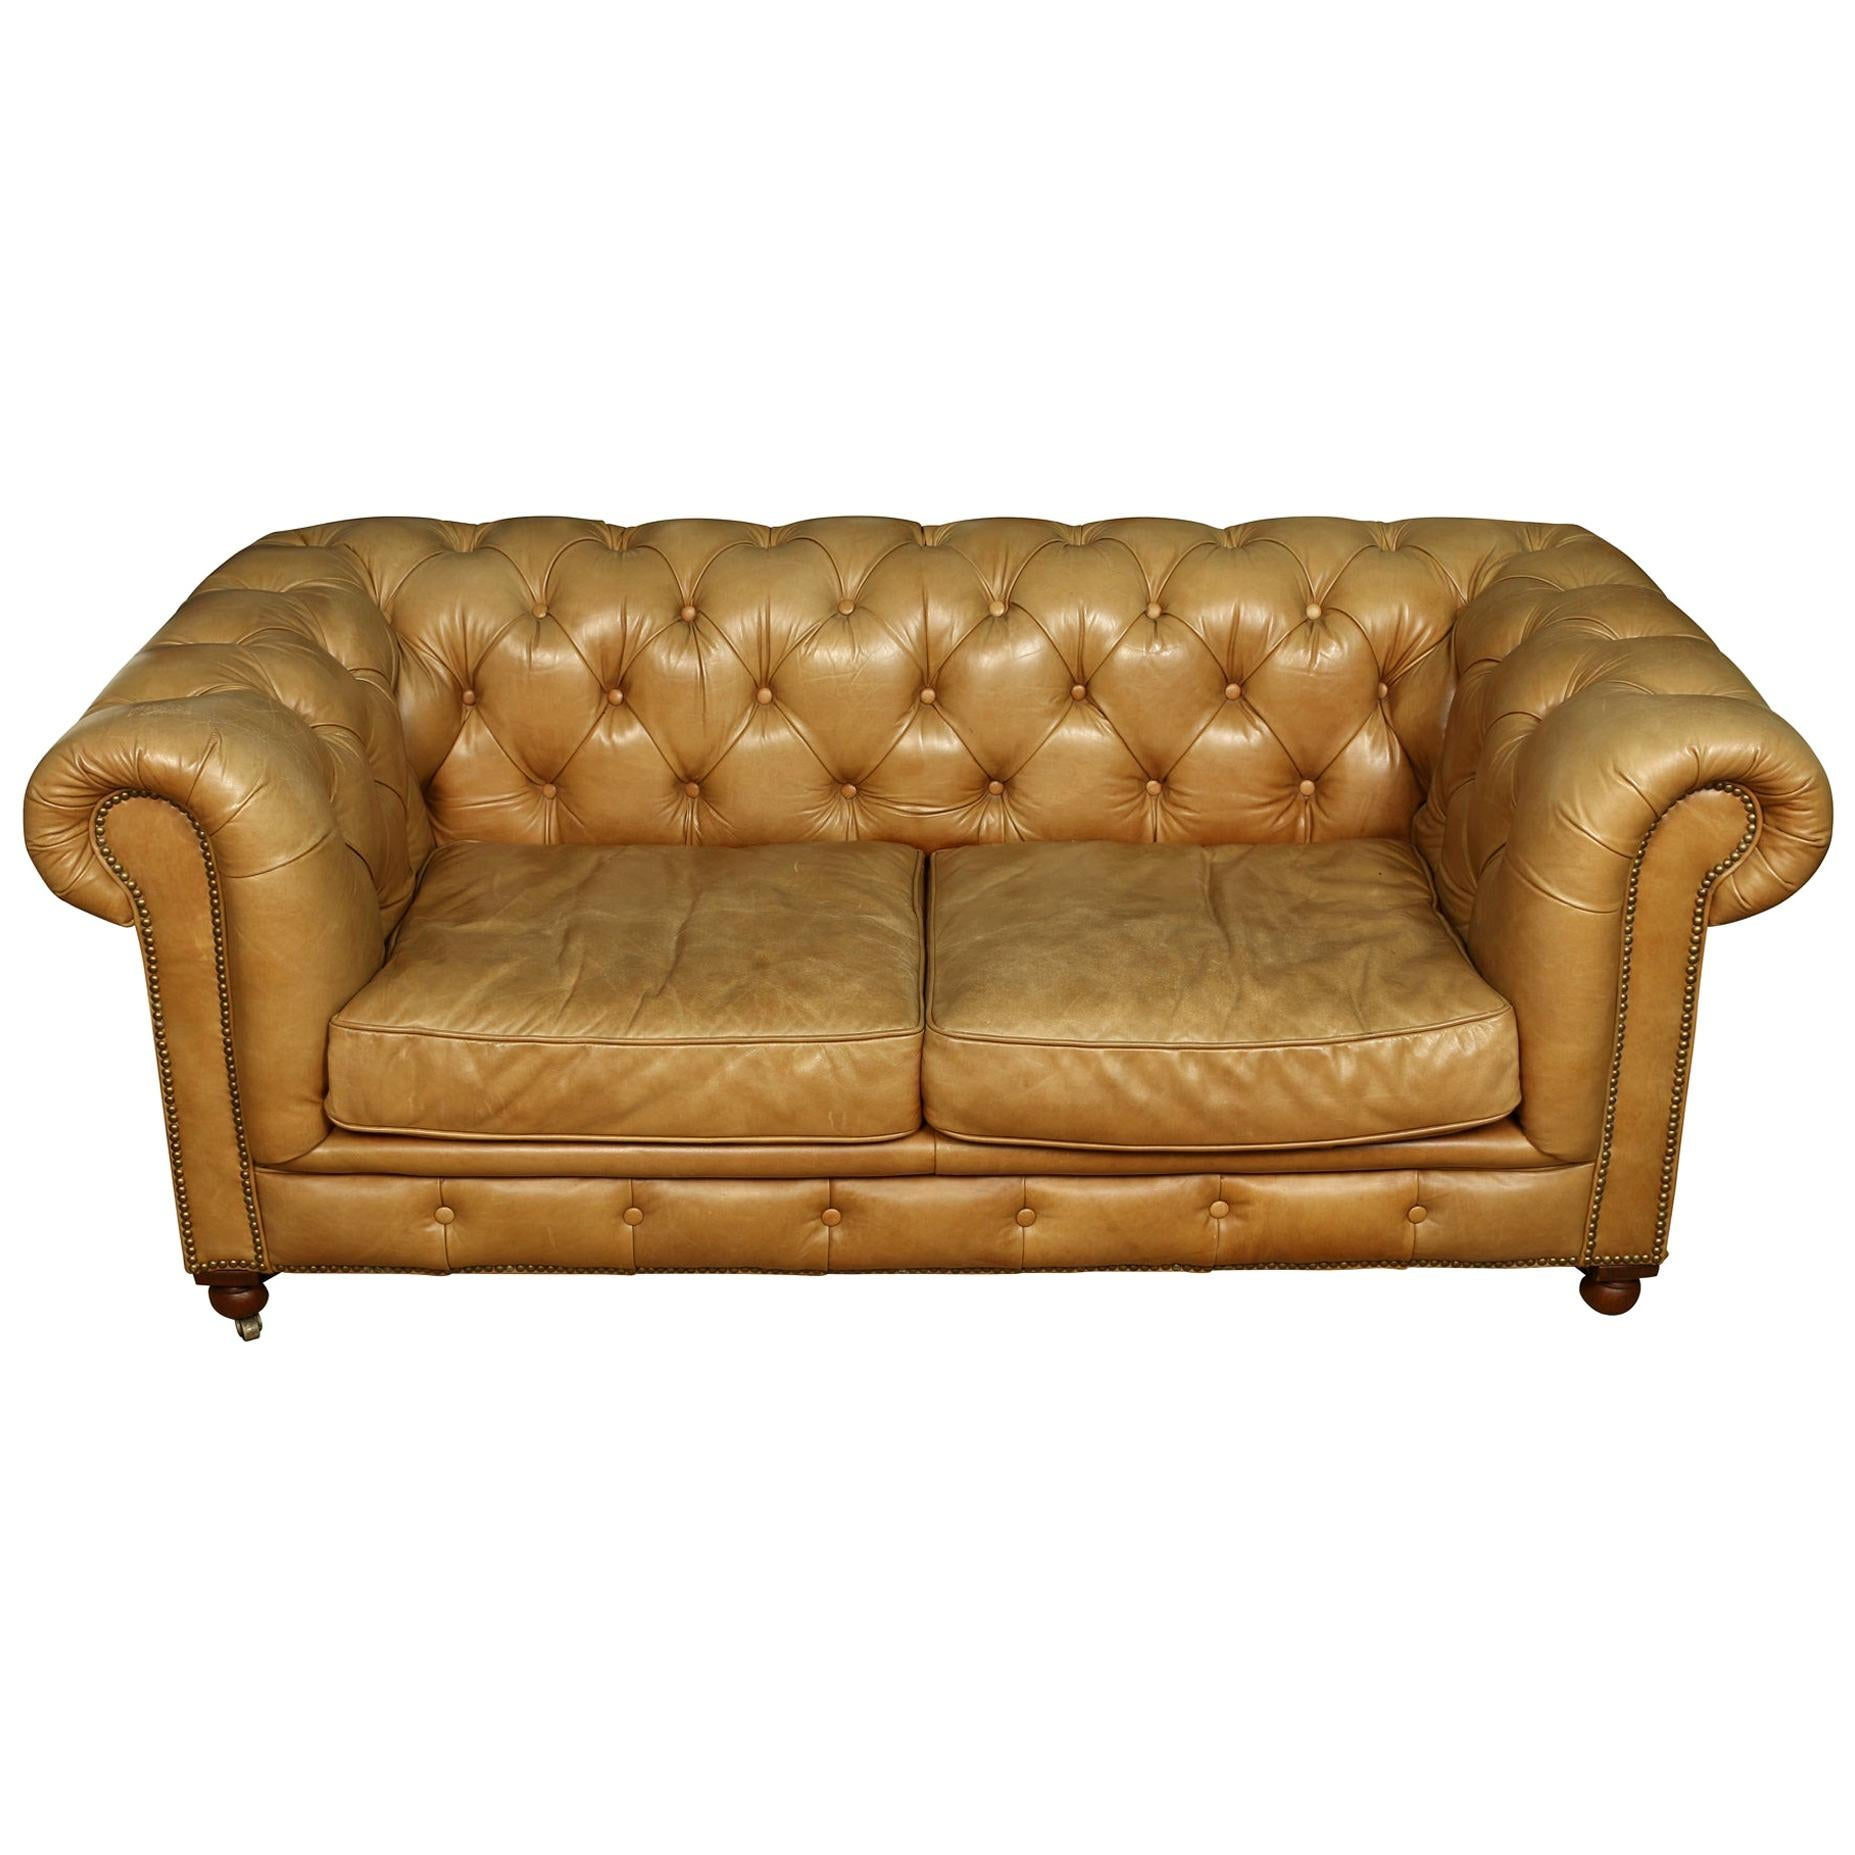 Vintage Leather Tufted Chesterfield Lovesesat